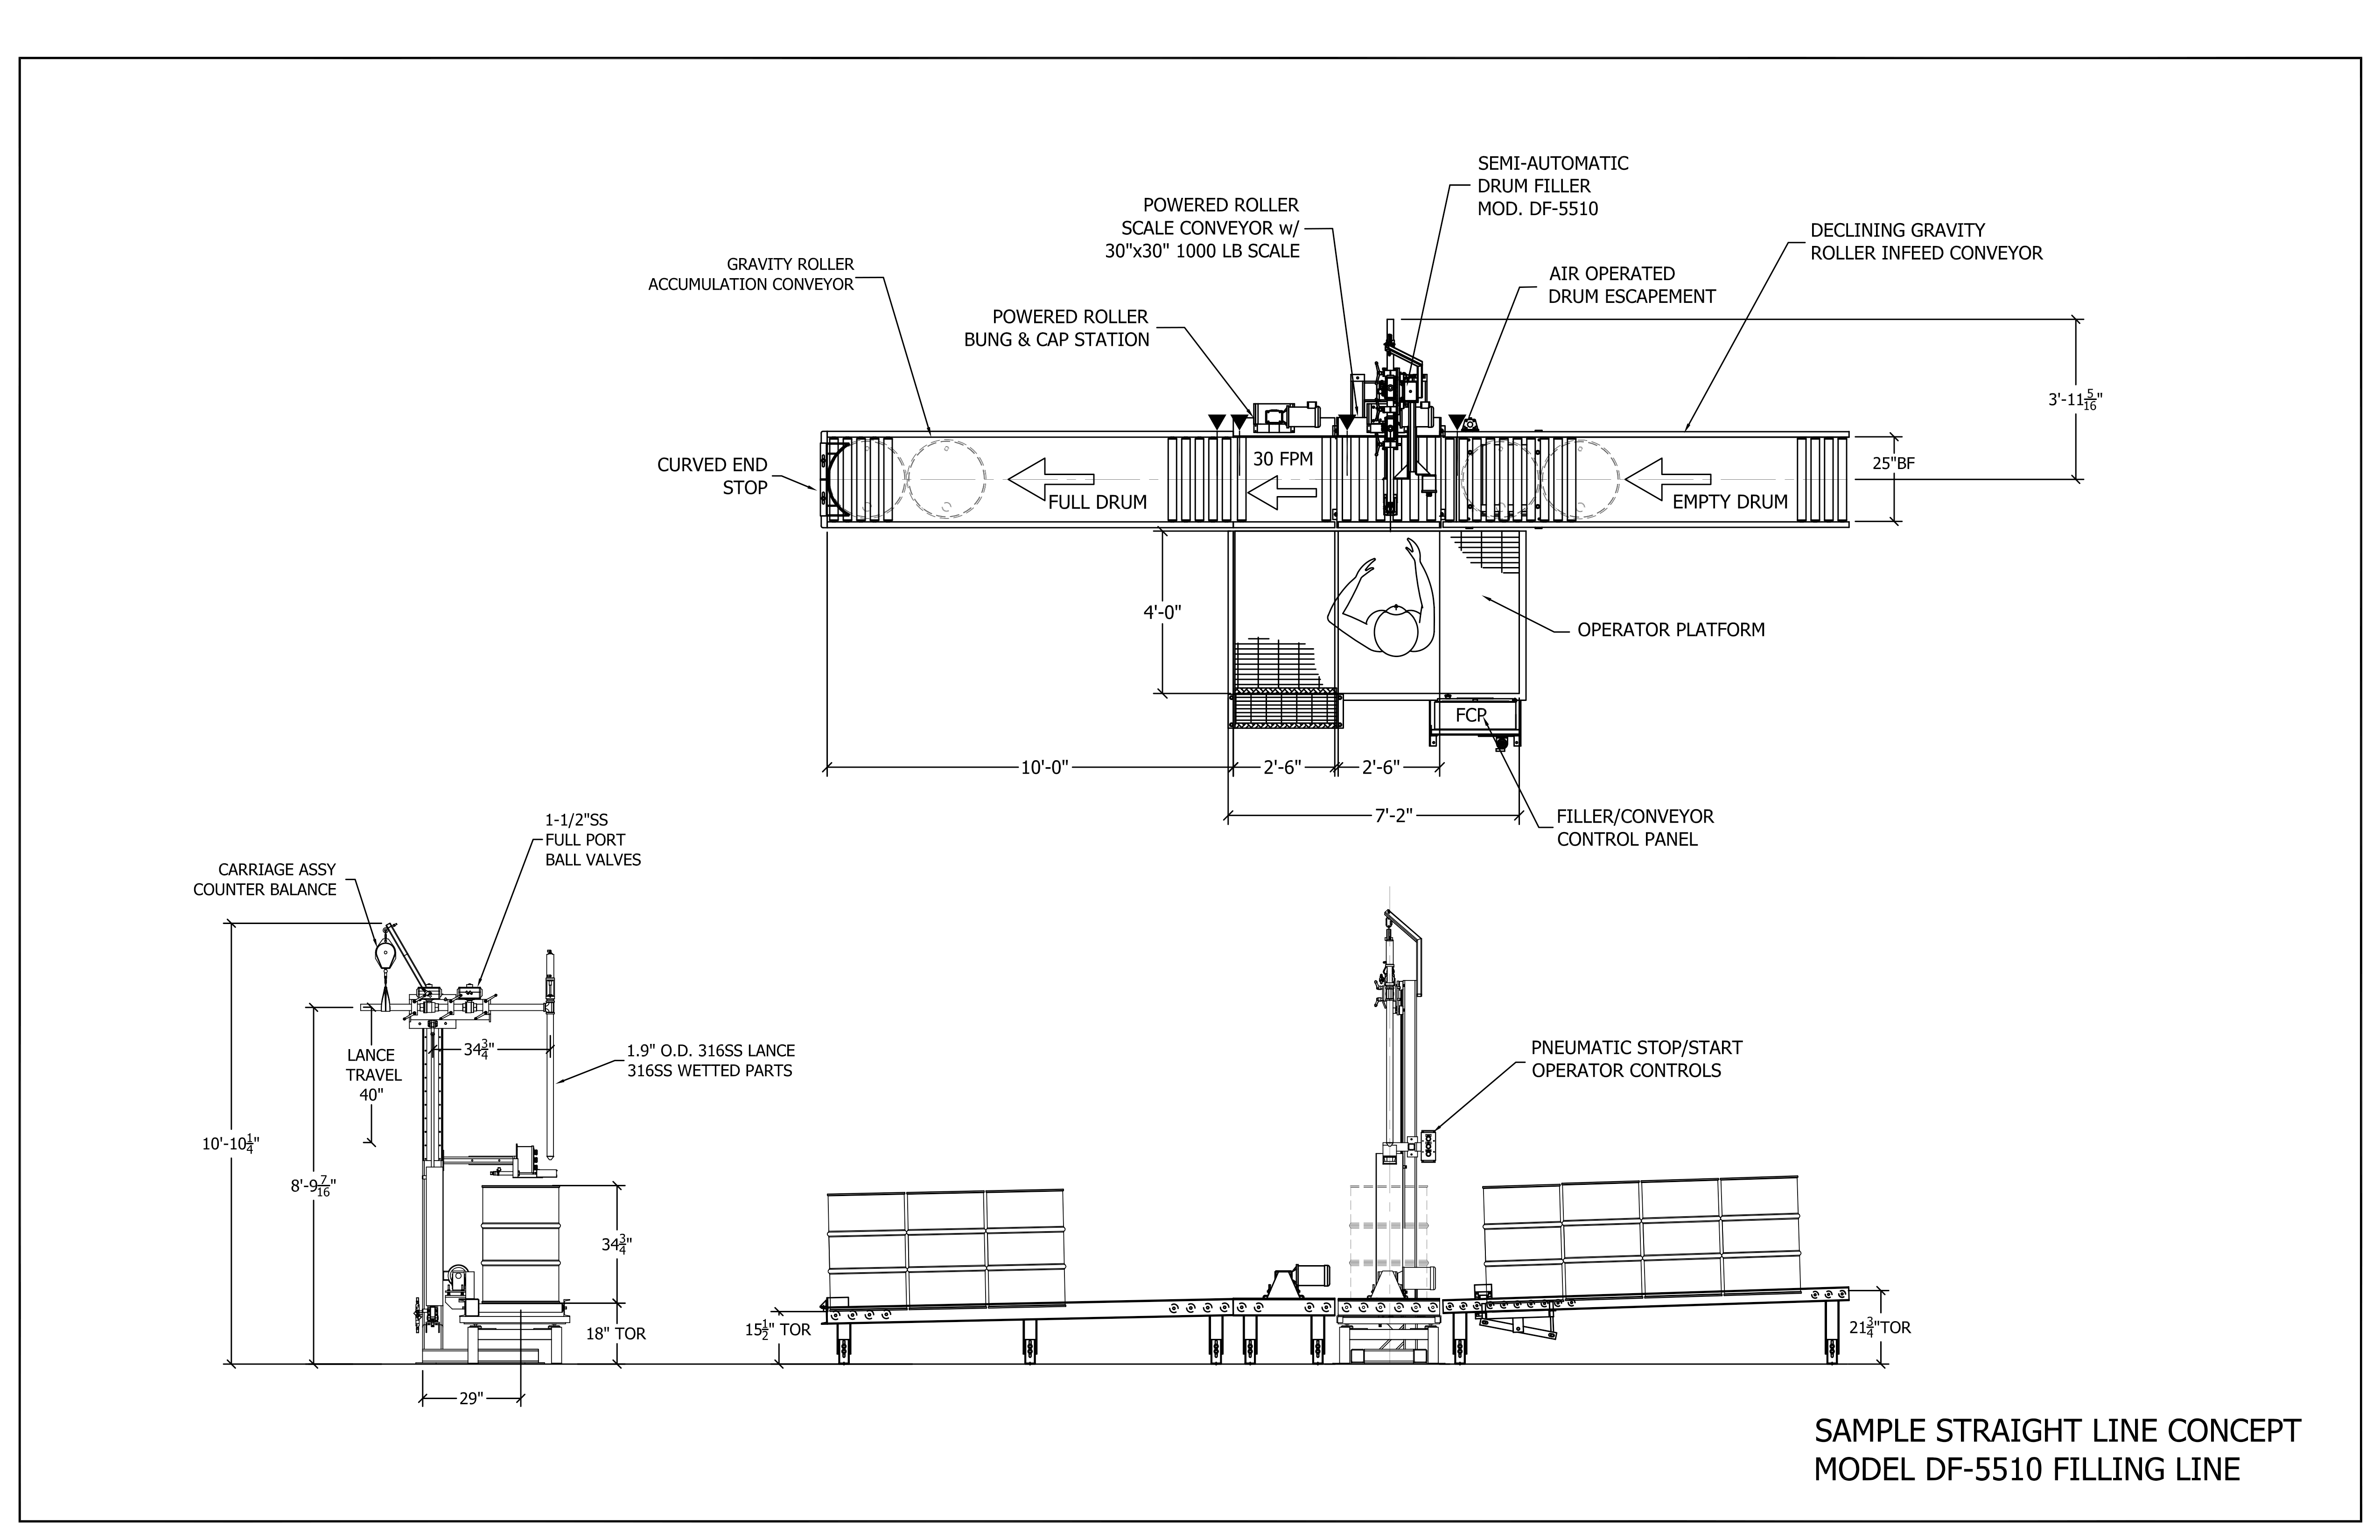 Concept Drawing Stainless Single Drum Filler